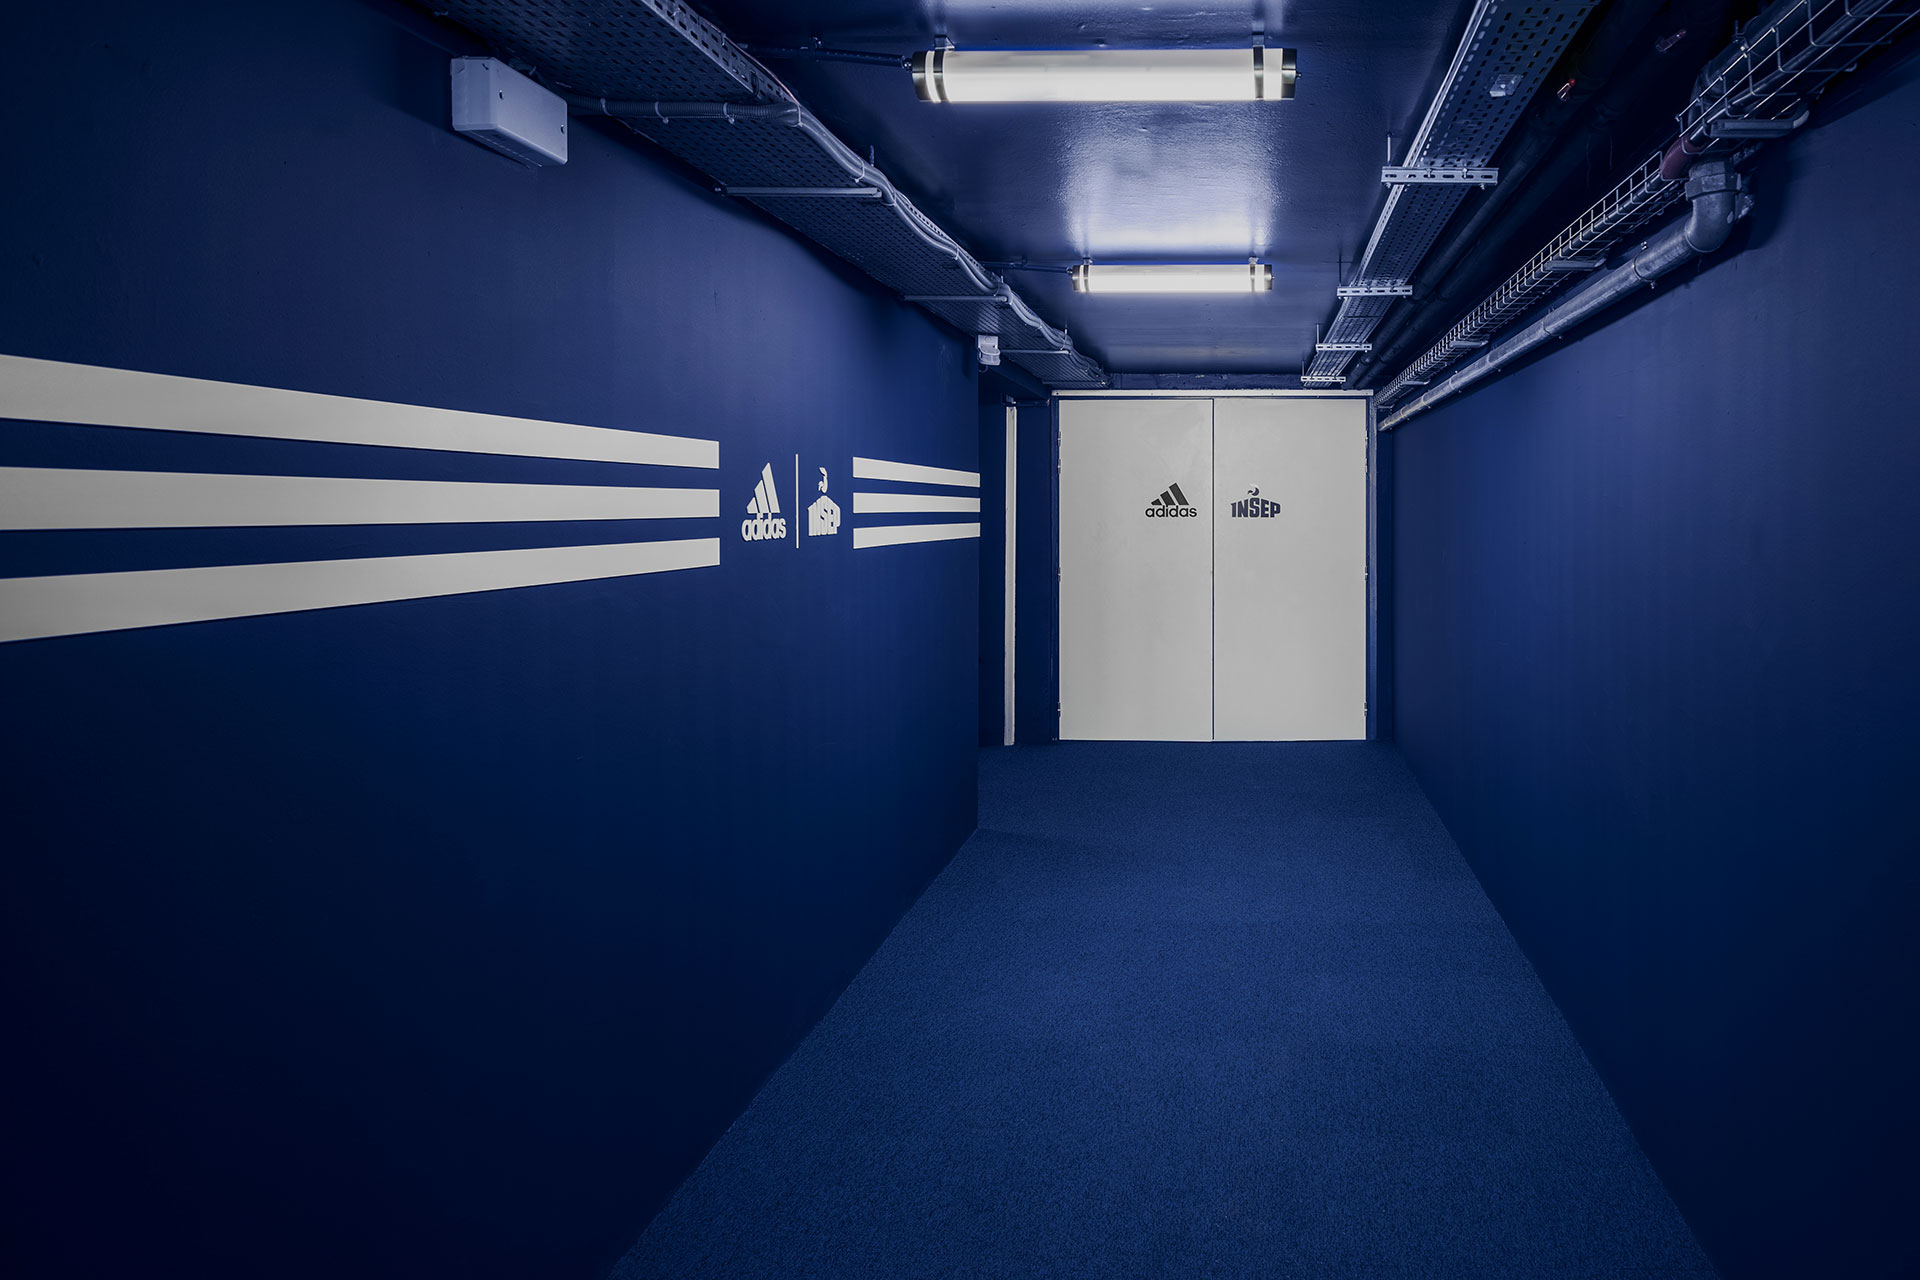 ADIDAS X INSEP by Ubalt Architectes and Ubi Bene. Photography by Yohann Fontaine.